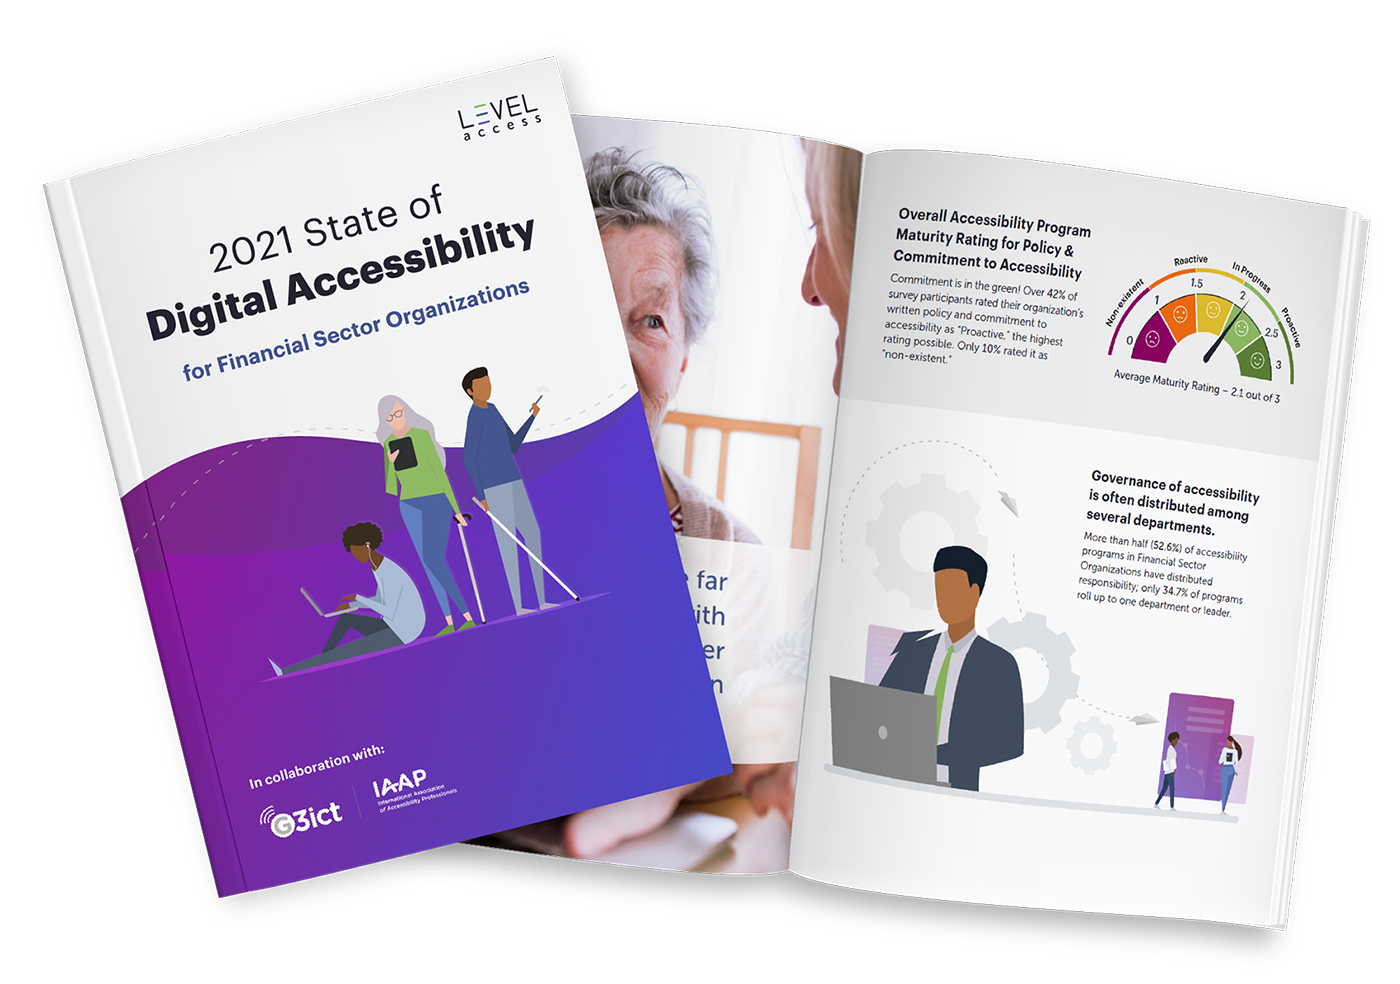 2021 State of Digital Accessibility for Financial Sector Organizations Report